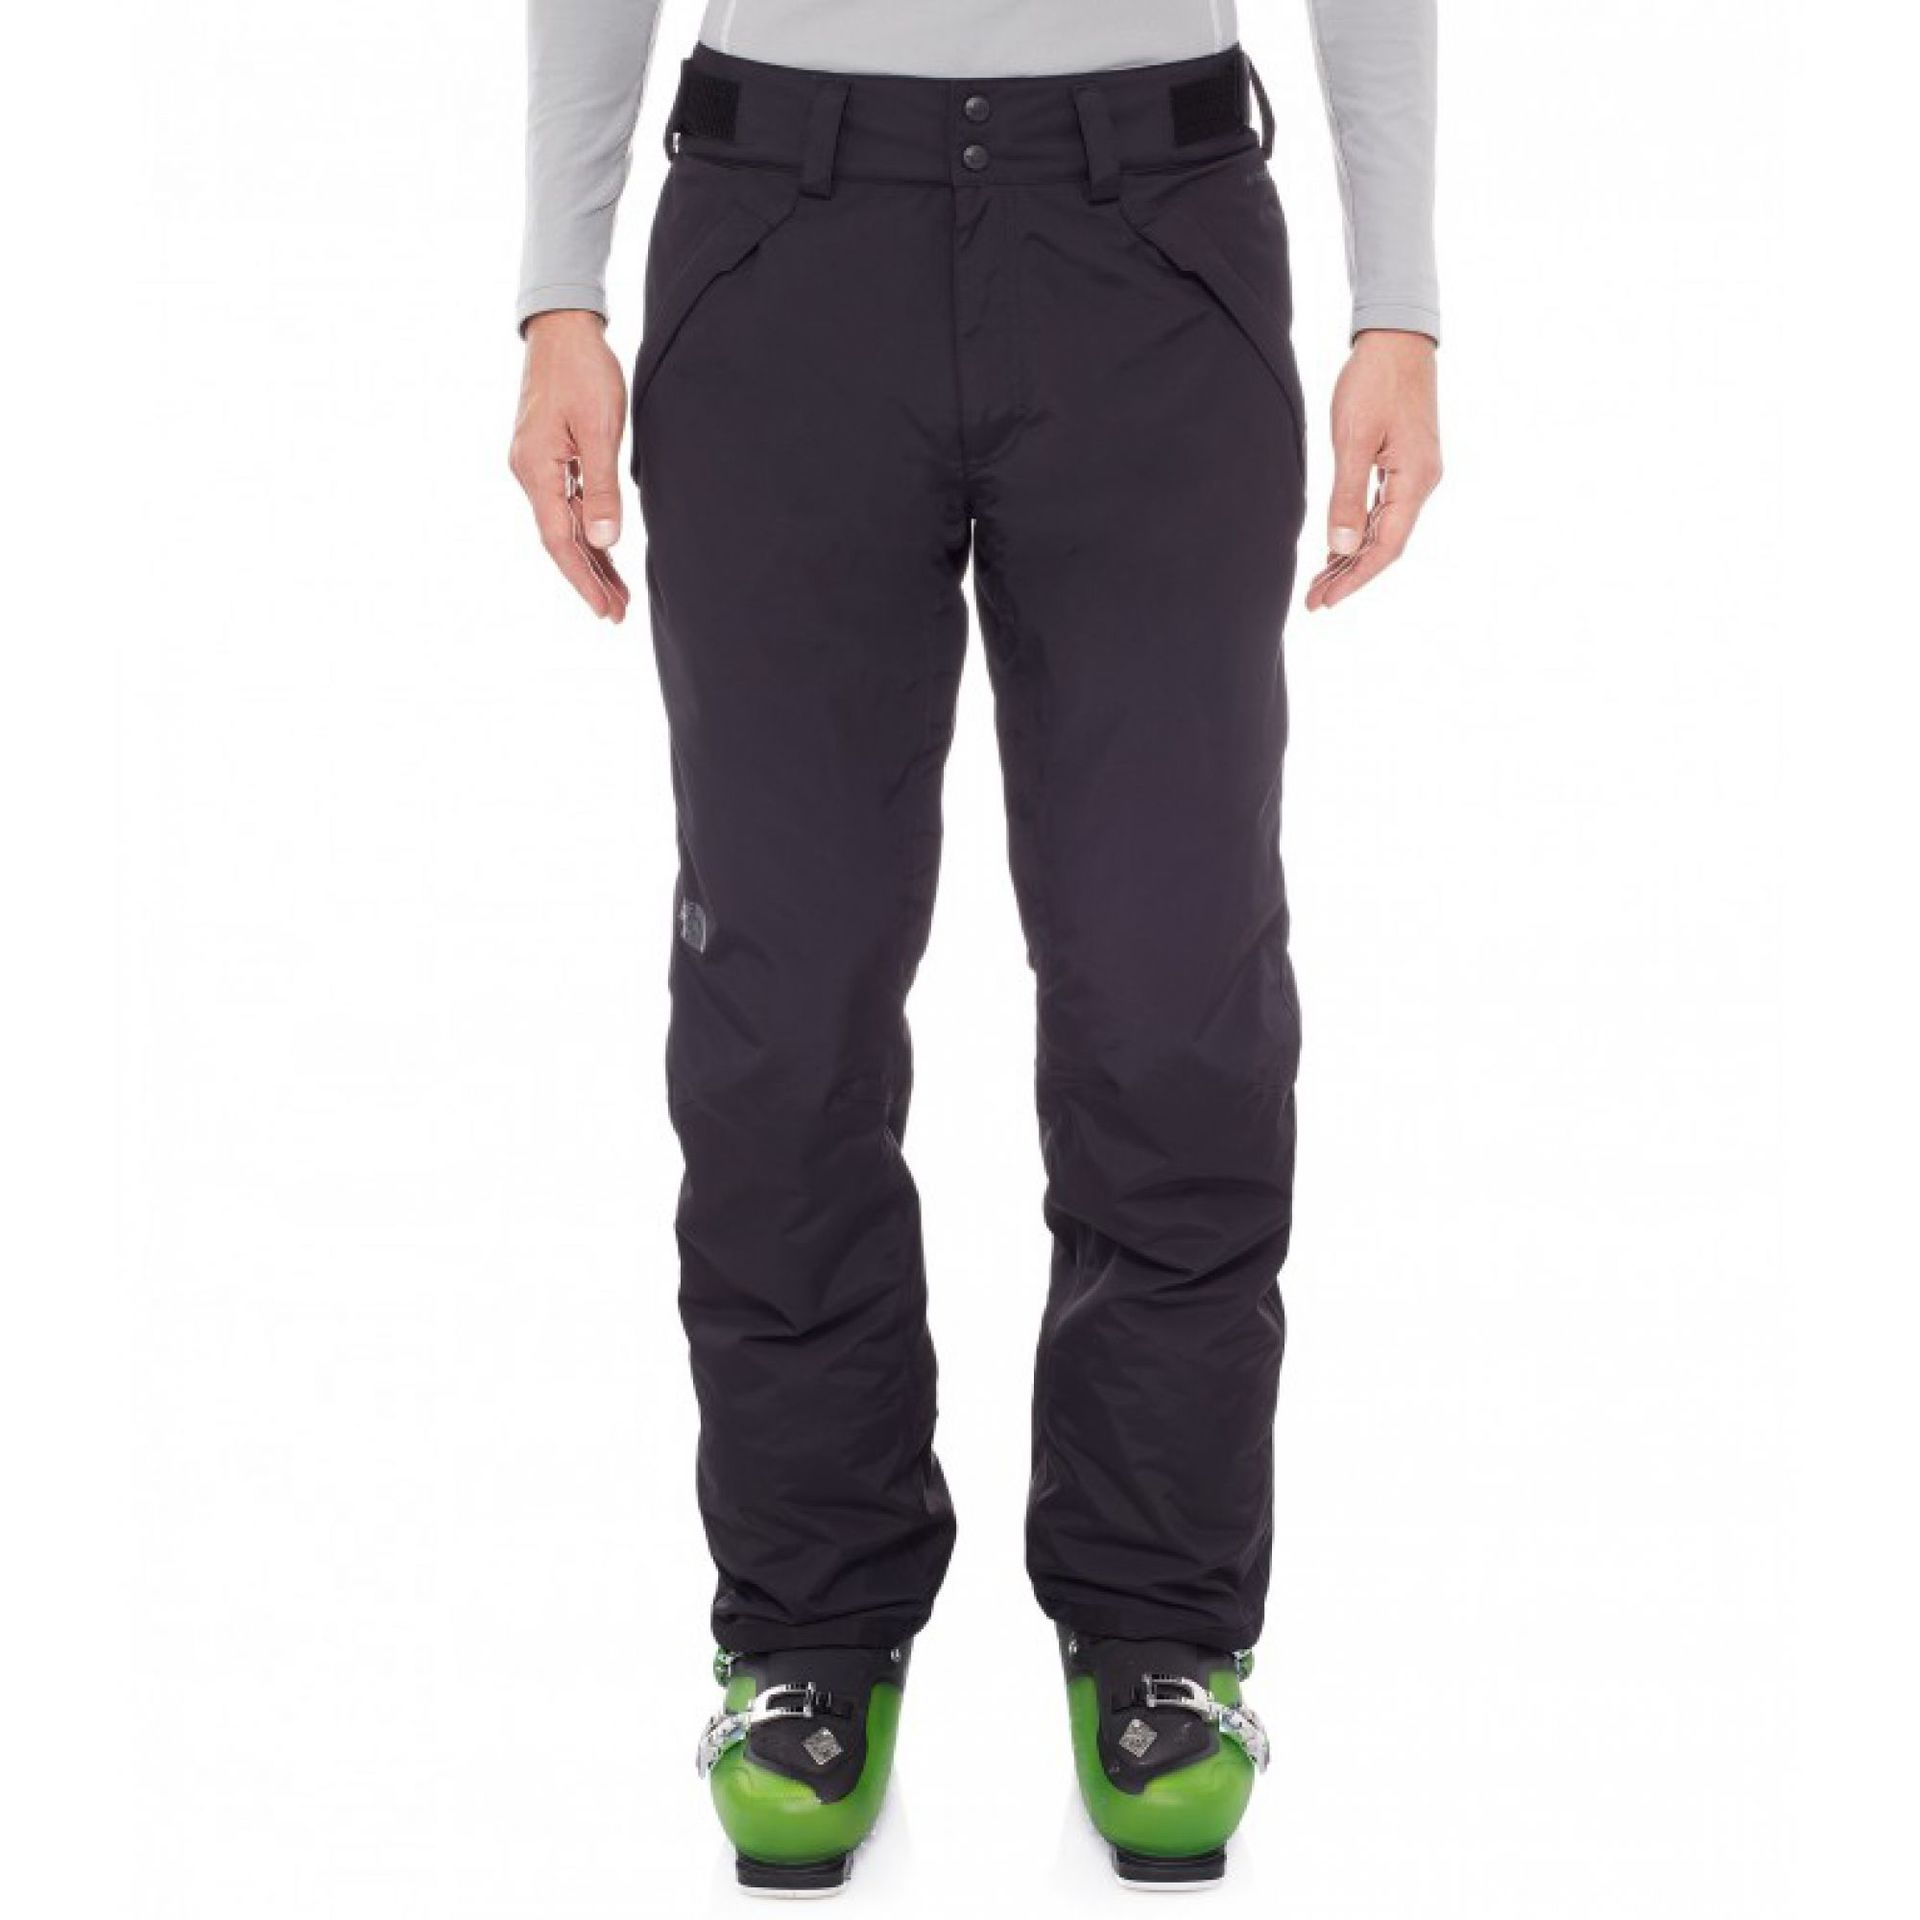 SPODNIE THE NORTH FACE MEN'S PRESENA PANT BLACK